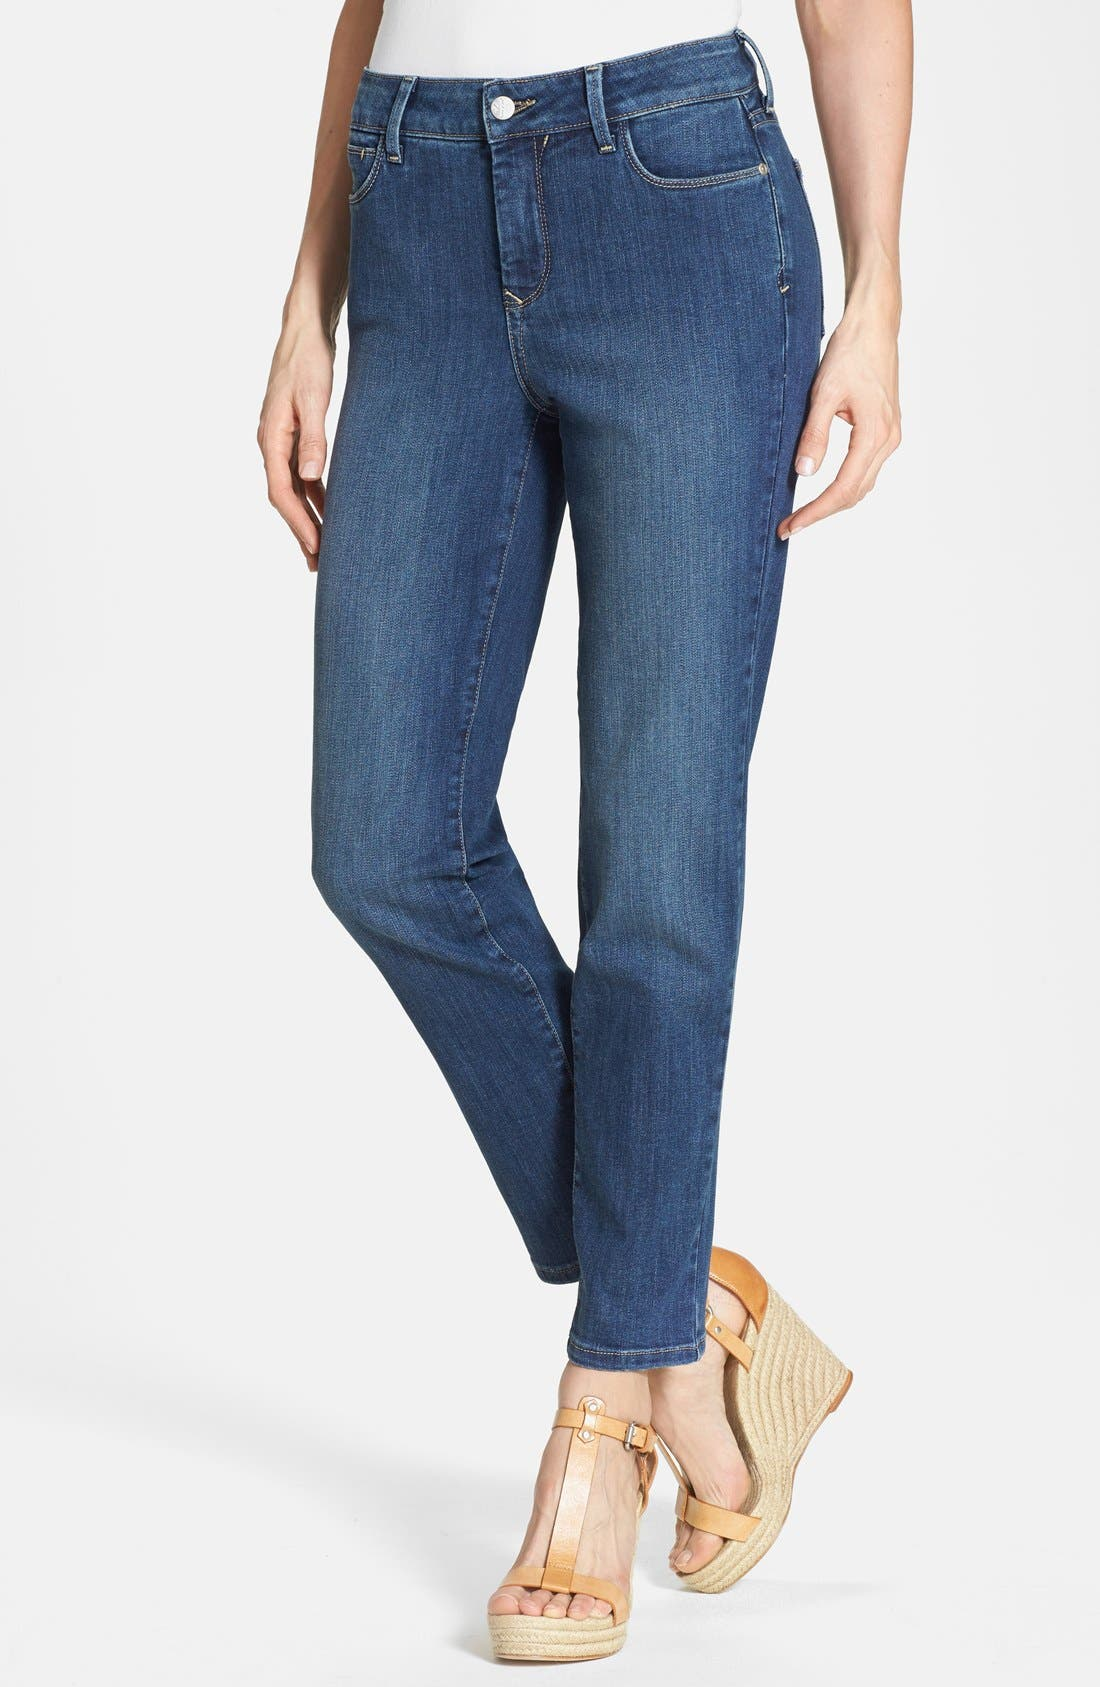 Main Image - NYDJ 'Clarissa' Stretch Ankle Skinny Jeans (Pittsburgh) (Petite)